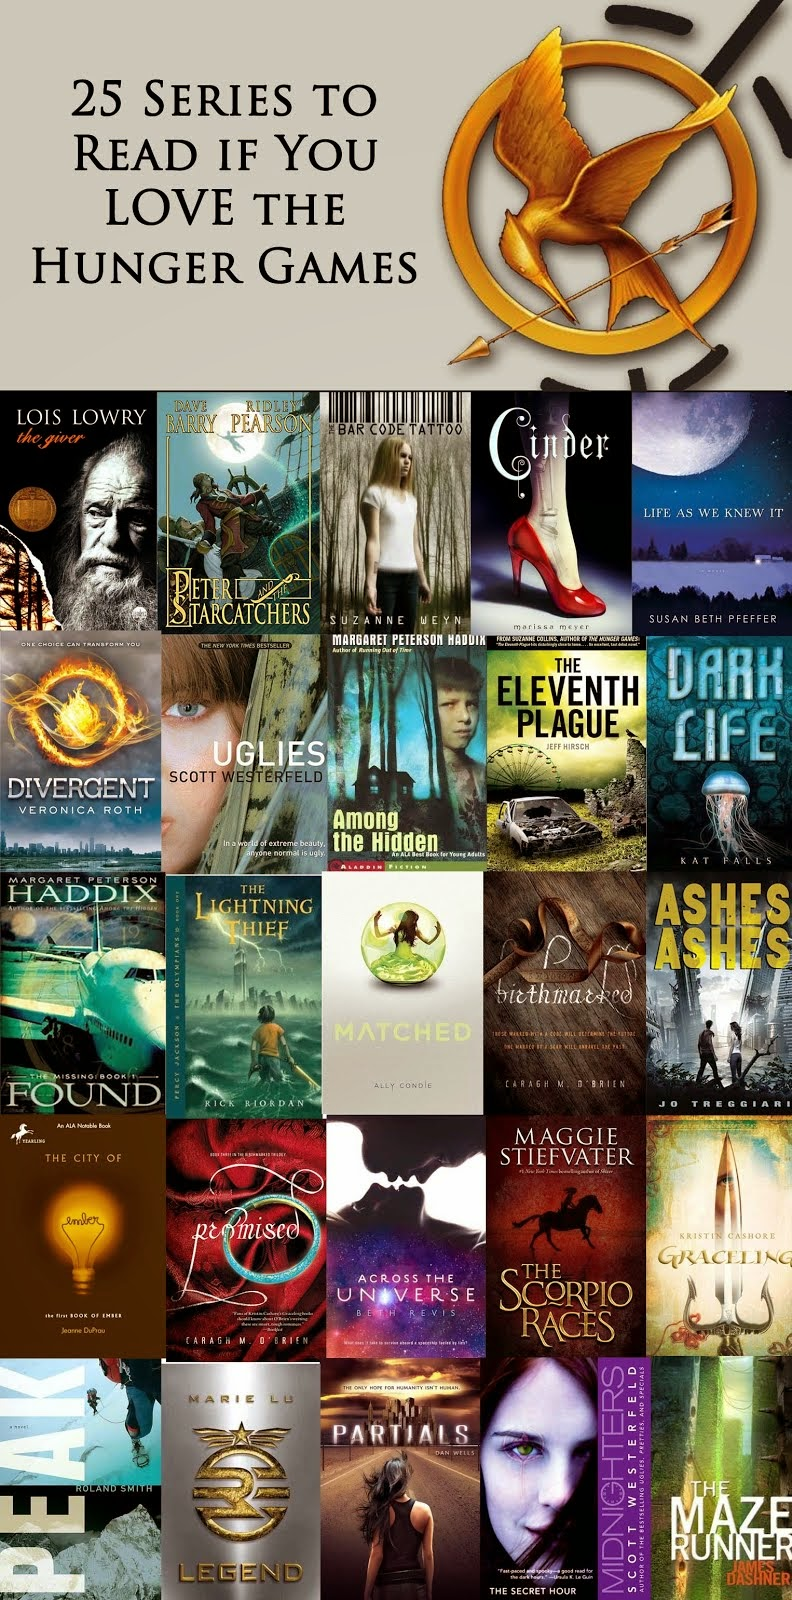 21 Series to READ